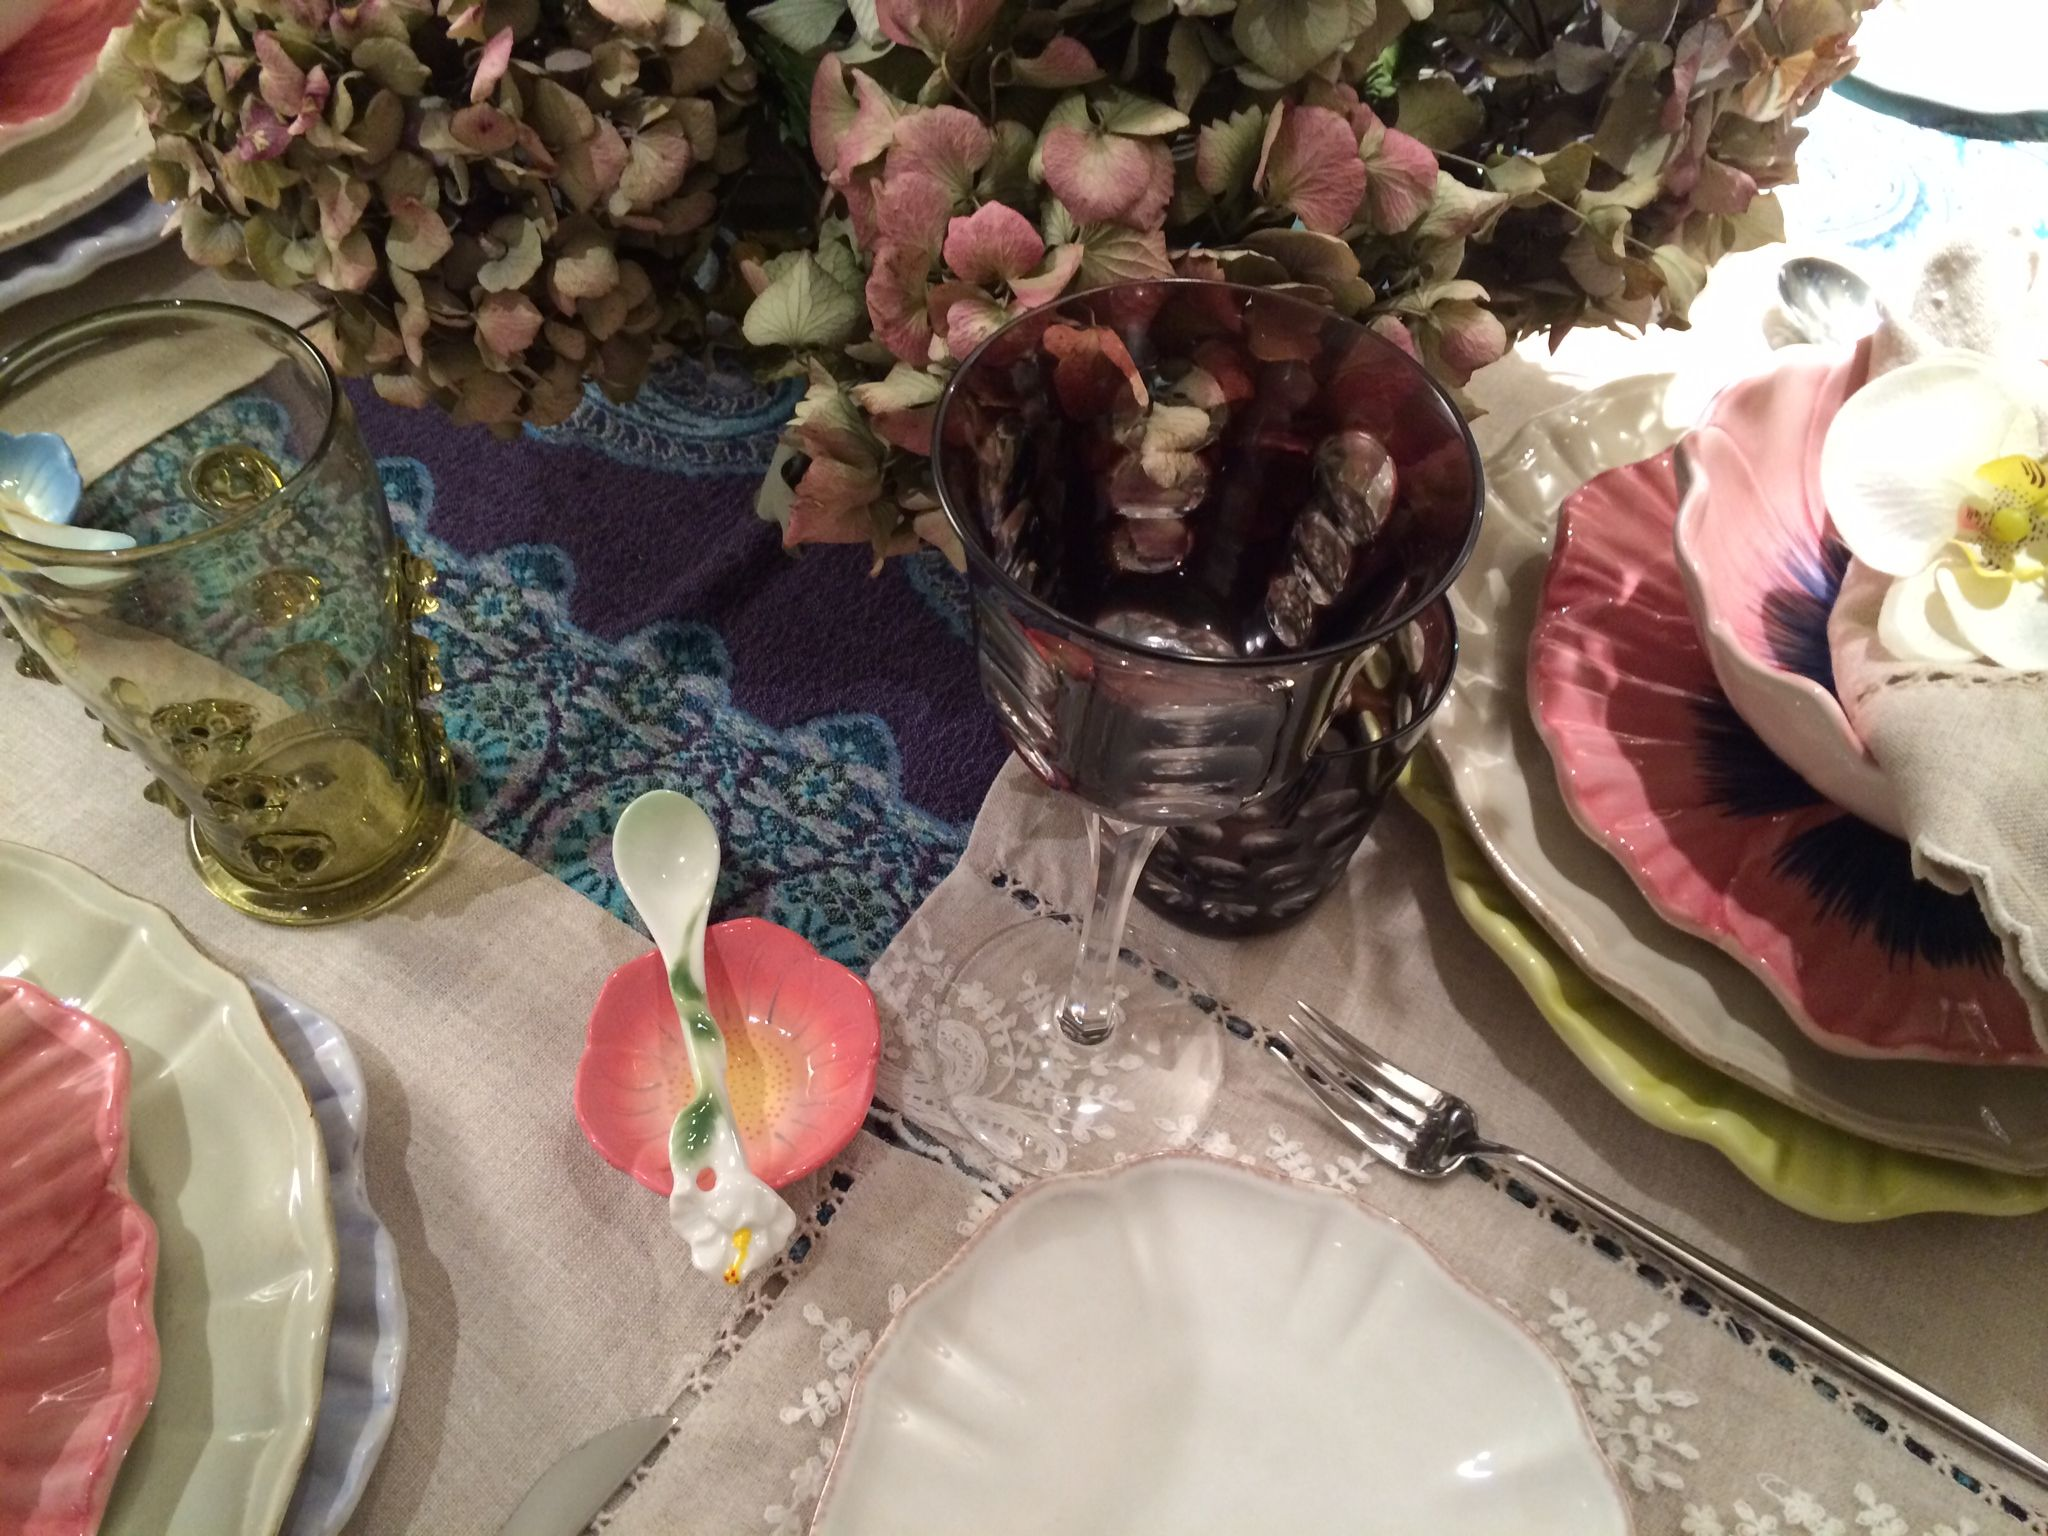 Charmant Blanc D Ivoire Saint Tropez #14: Christofle Wine Glasses Mixed With Murano Glasses And Jug | Vista Alegre  Cutlery | Blanc D. Hydrangea FlowerHydrangeasSaint TropezZara ...